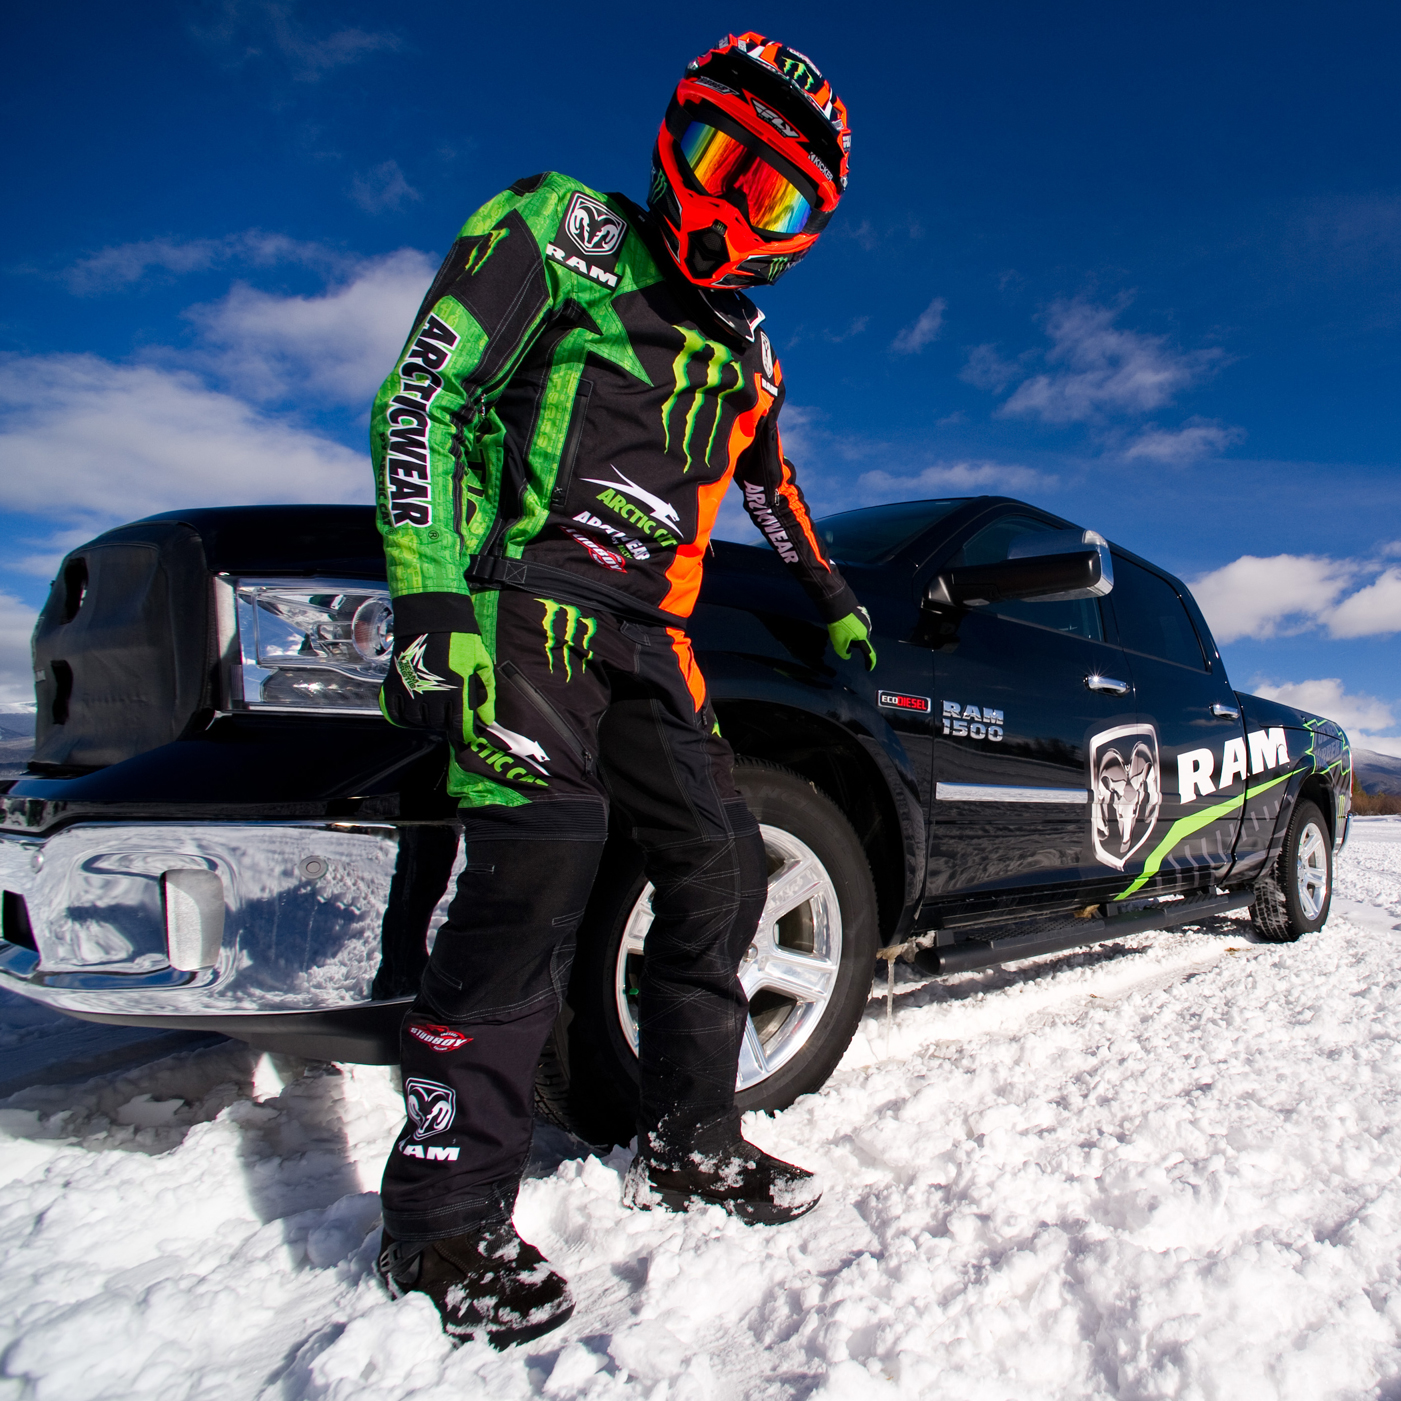 Meet Tucker and get FREE tickets to Ram Snocross!